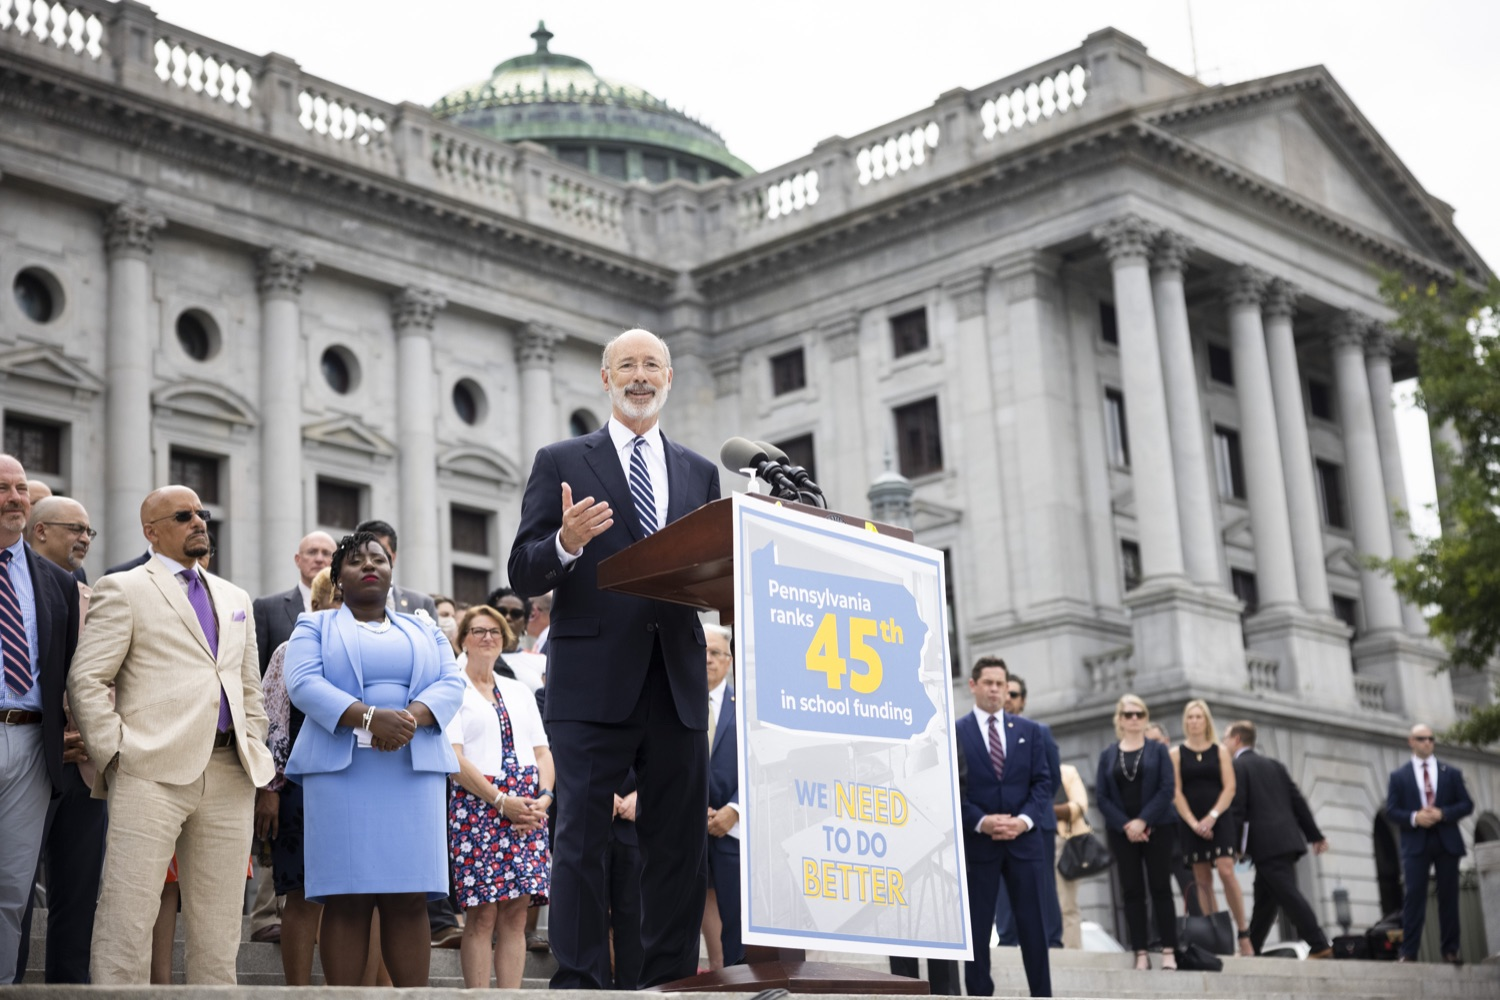 """<a href=""""https://filesource.wostreaming.net/commonwealthofpa/photo/18810_gov_fairFunding_dz_002.jpg"""" target=""""_blank"""">⇣Download Photo<br></a>Pennsylvania Governor Tom Wolf speaking with the press.  Continuing their commitment to students and working families, Governor Tom Wolf and House and Senate Democratic Leaders held a Capitol press conference today to highlight the injustice in the states school funding system and call for fair funding of every district.  Harrisburg, PA   June 8, 2021"""